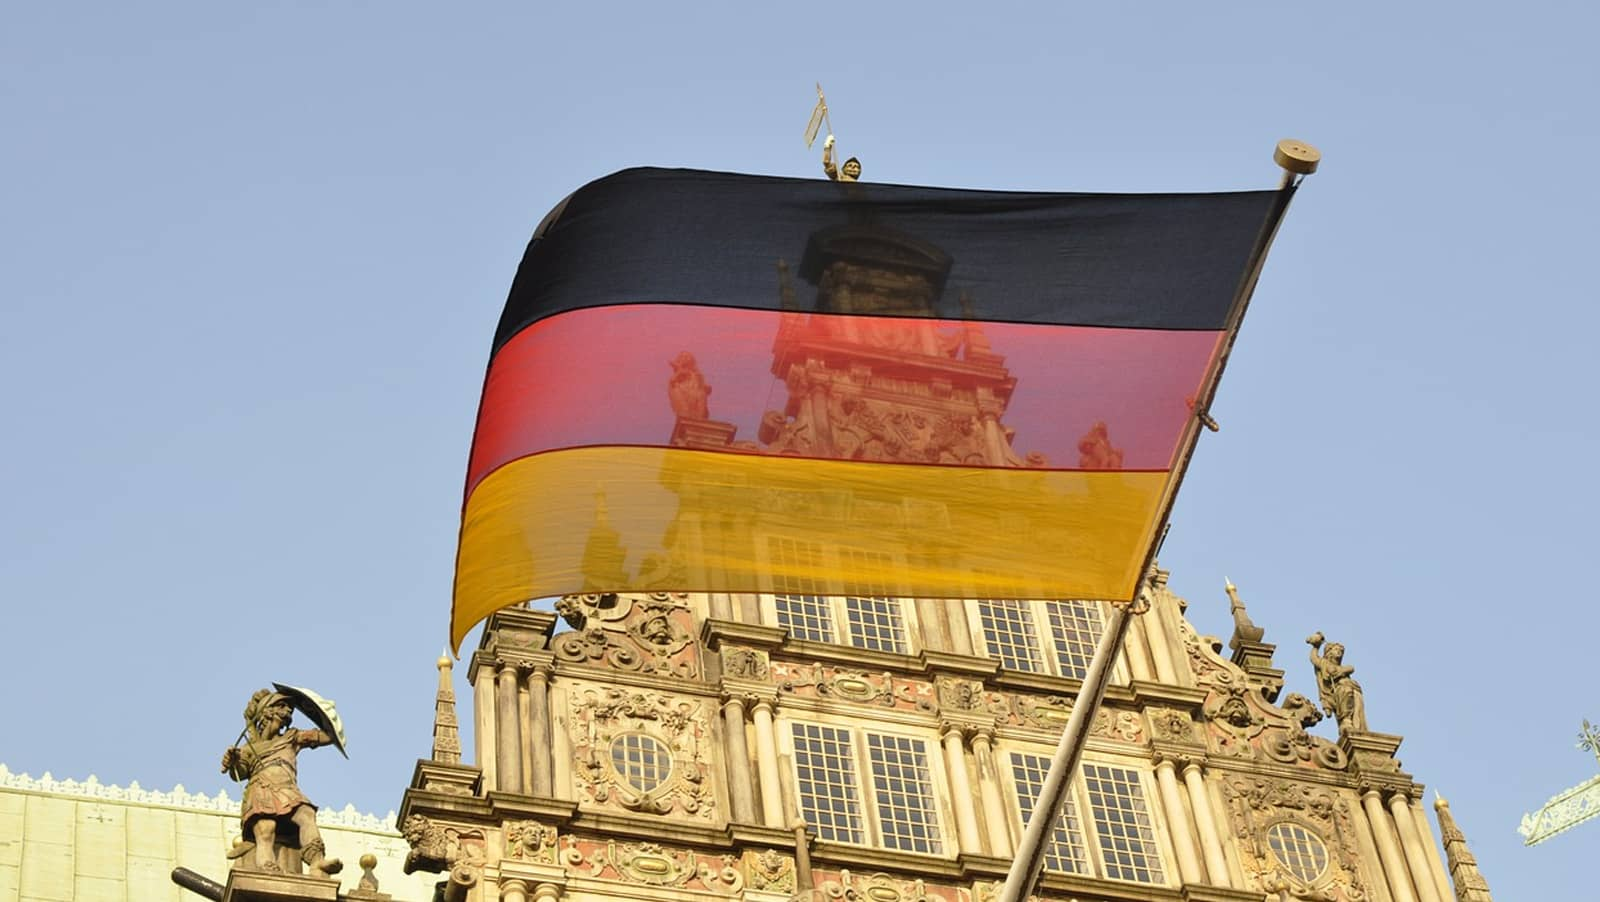 german-gambling-regulations-pass-to-allow-expanded-online-betting-min